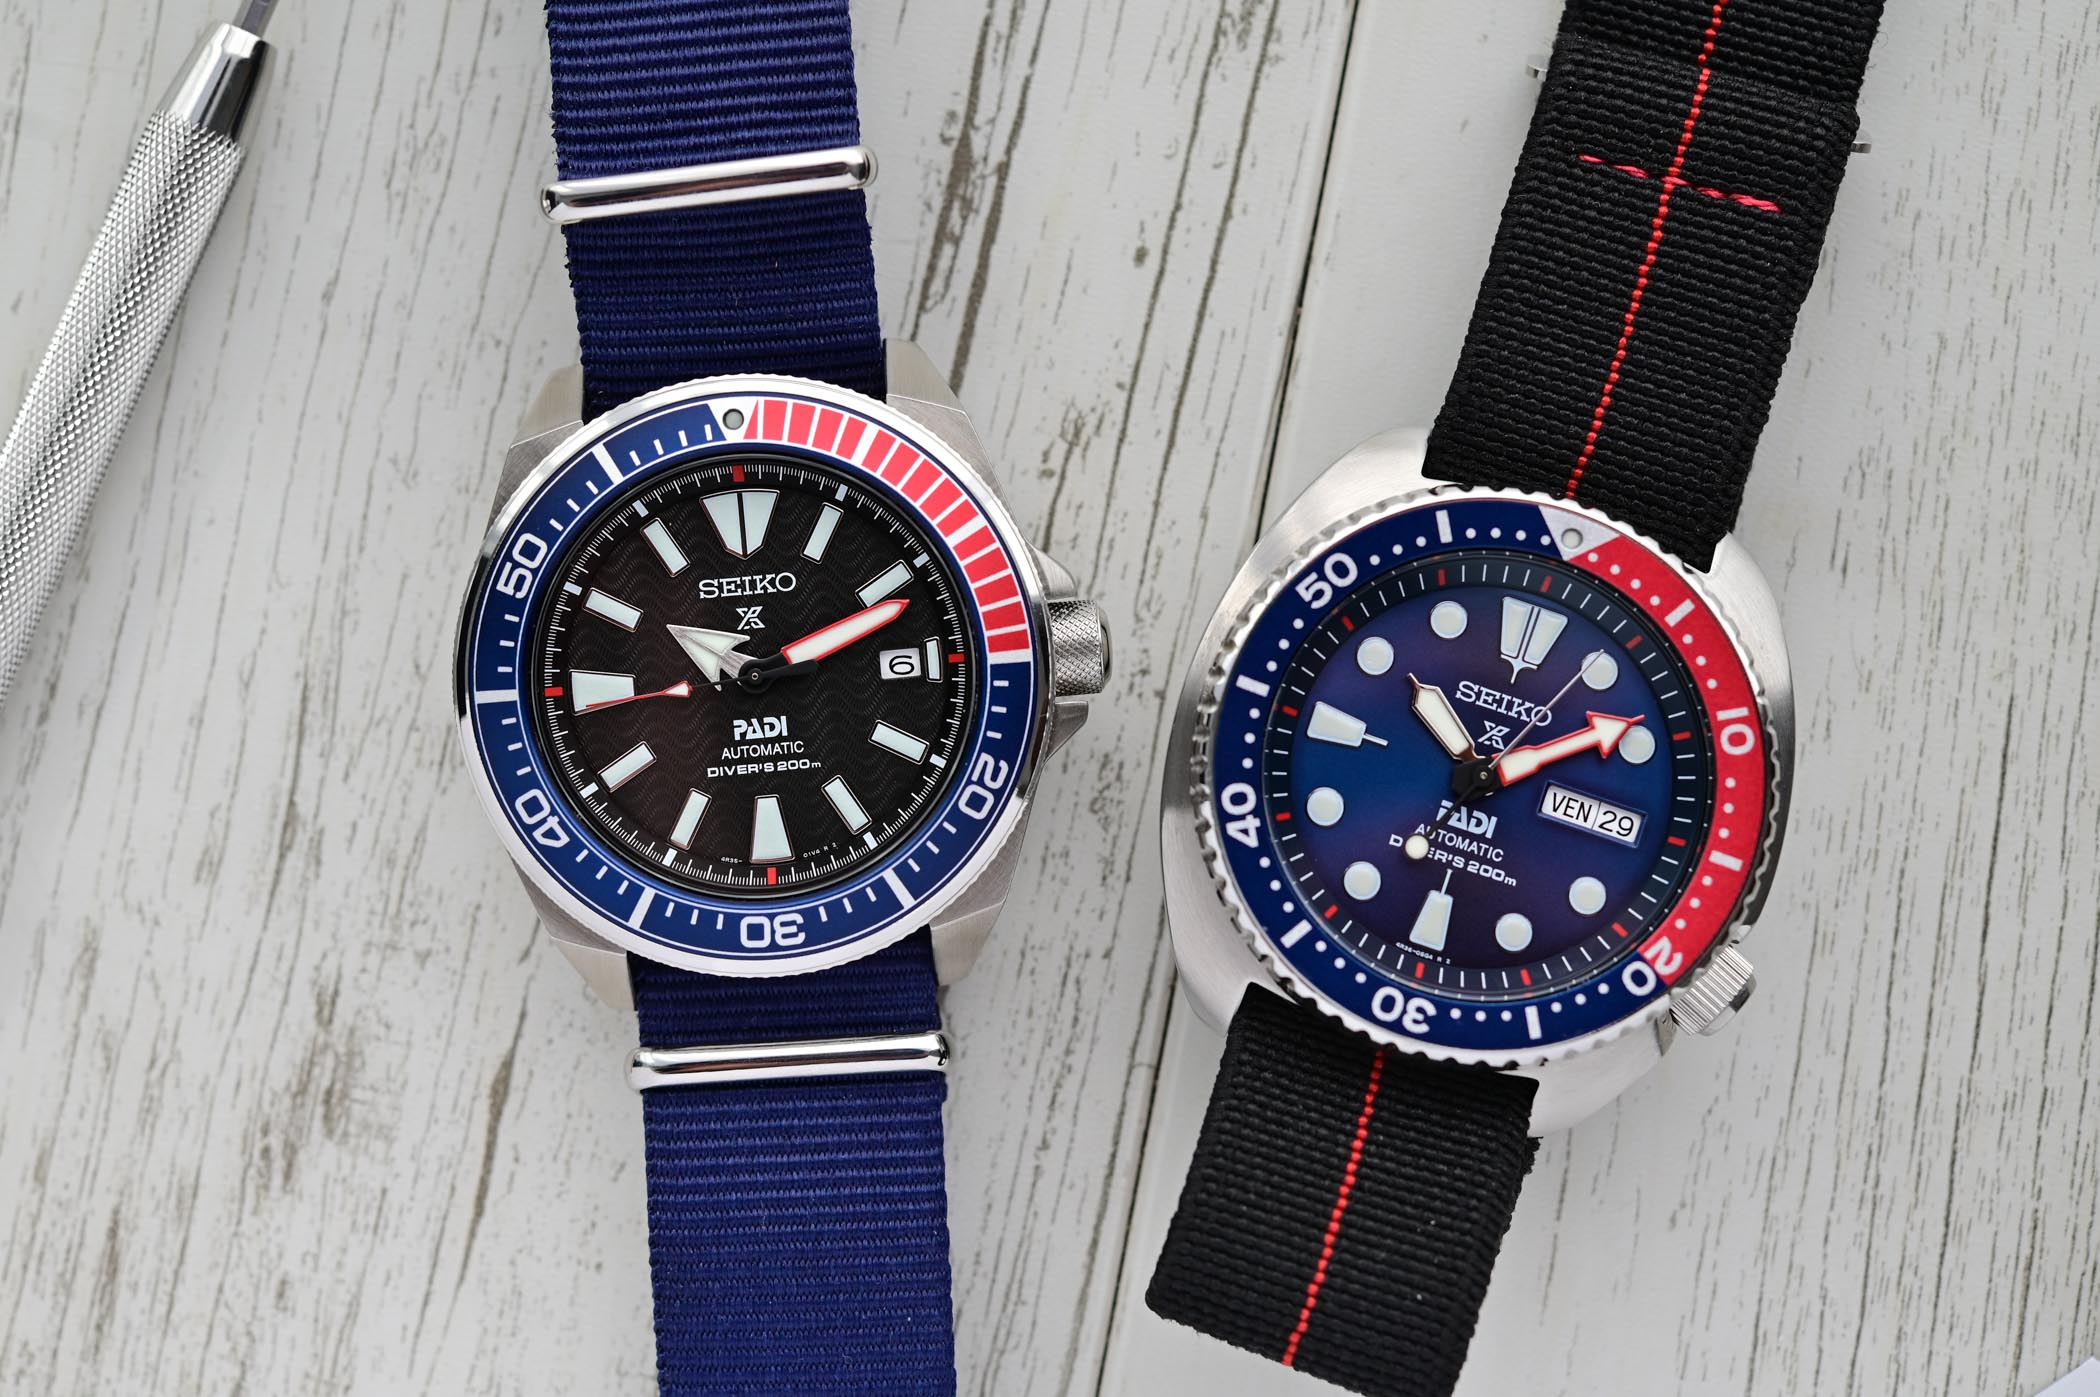 What Makes The Seiko Prospex Divers